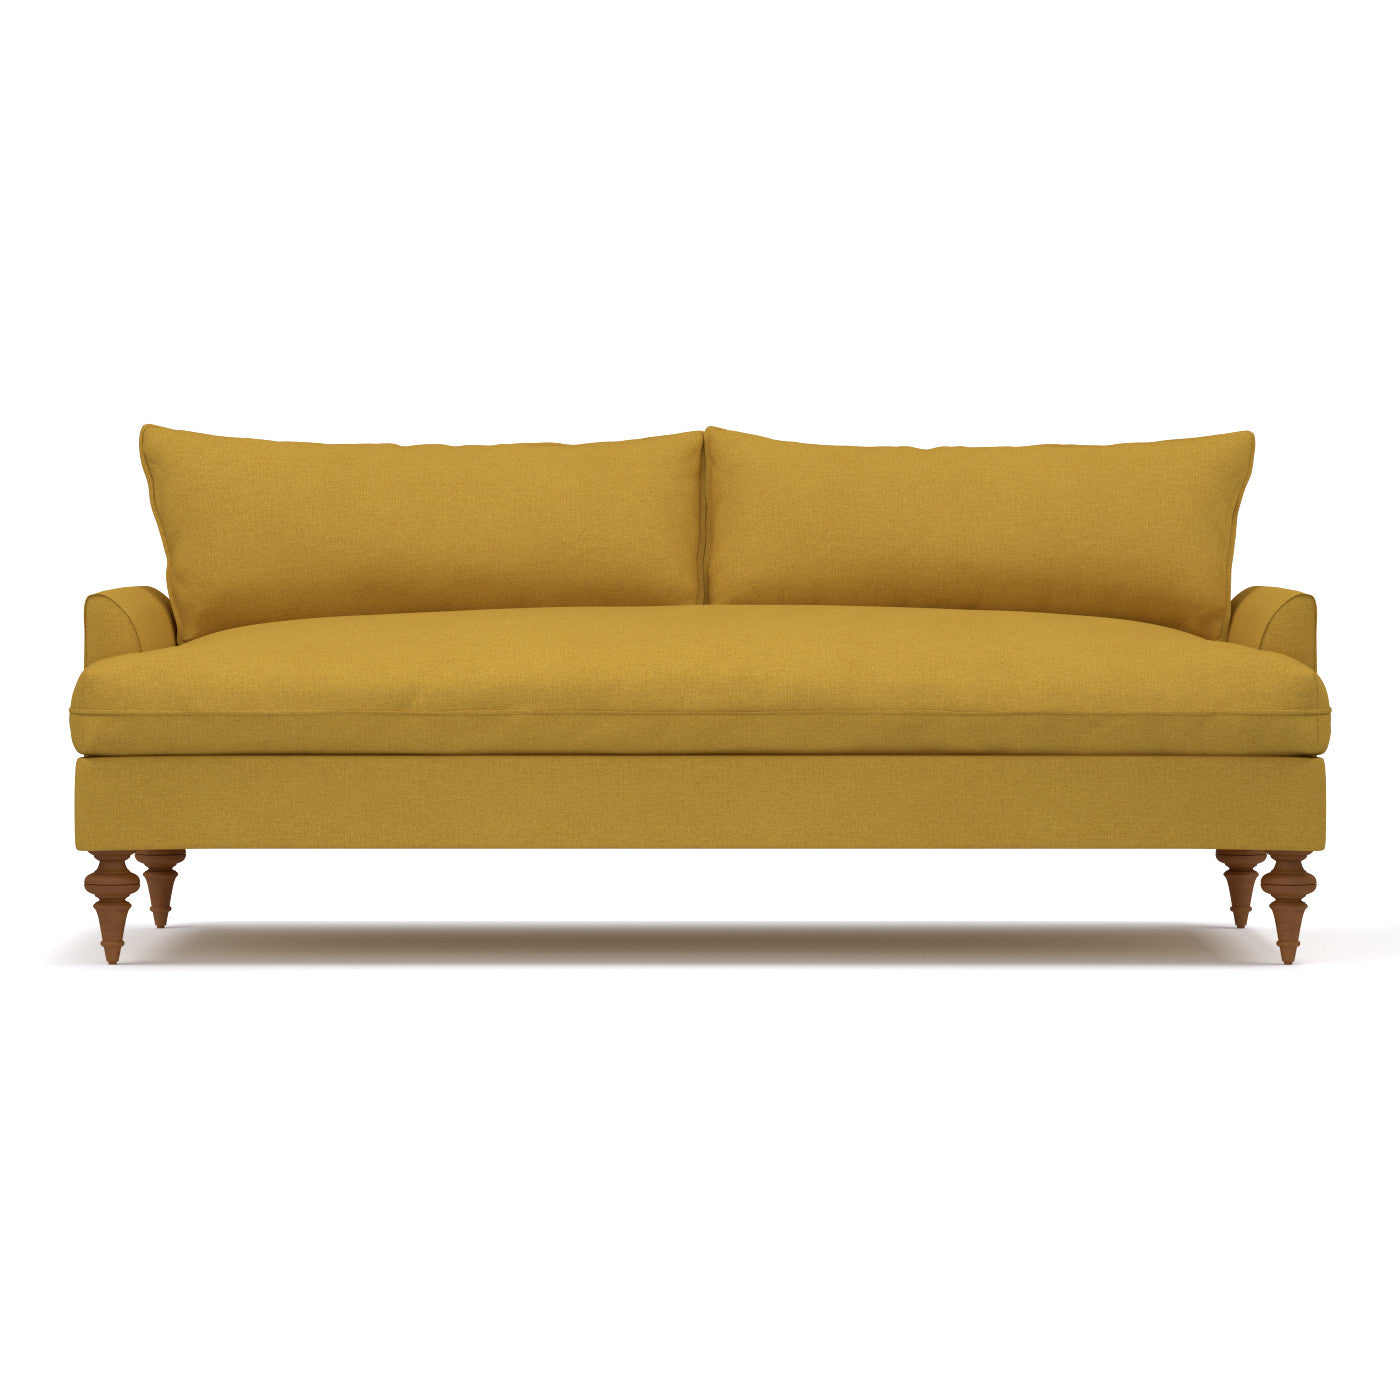 Saxon Sofa from Kyle Schuneman CHOICE OF FABRICS - Apt2B - 19